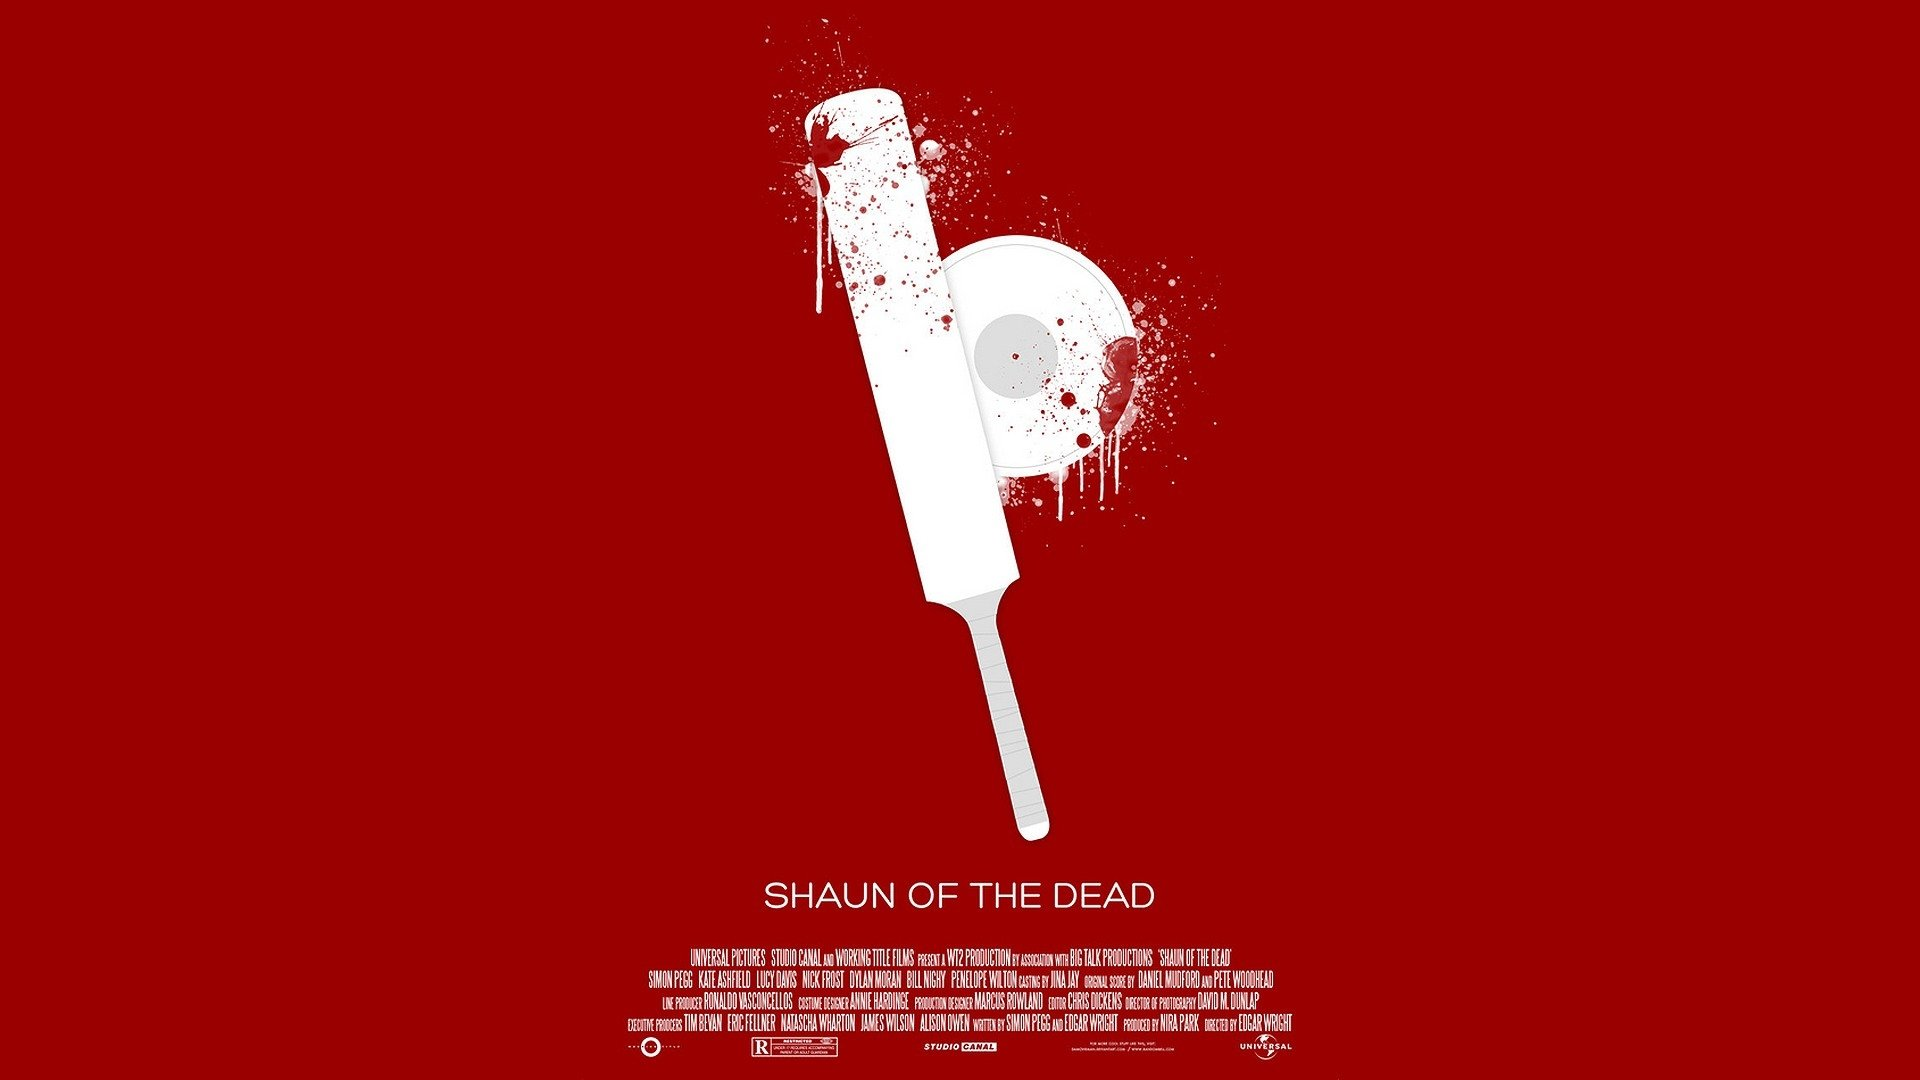 shaun of the dead wallpaper - photo #4